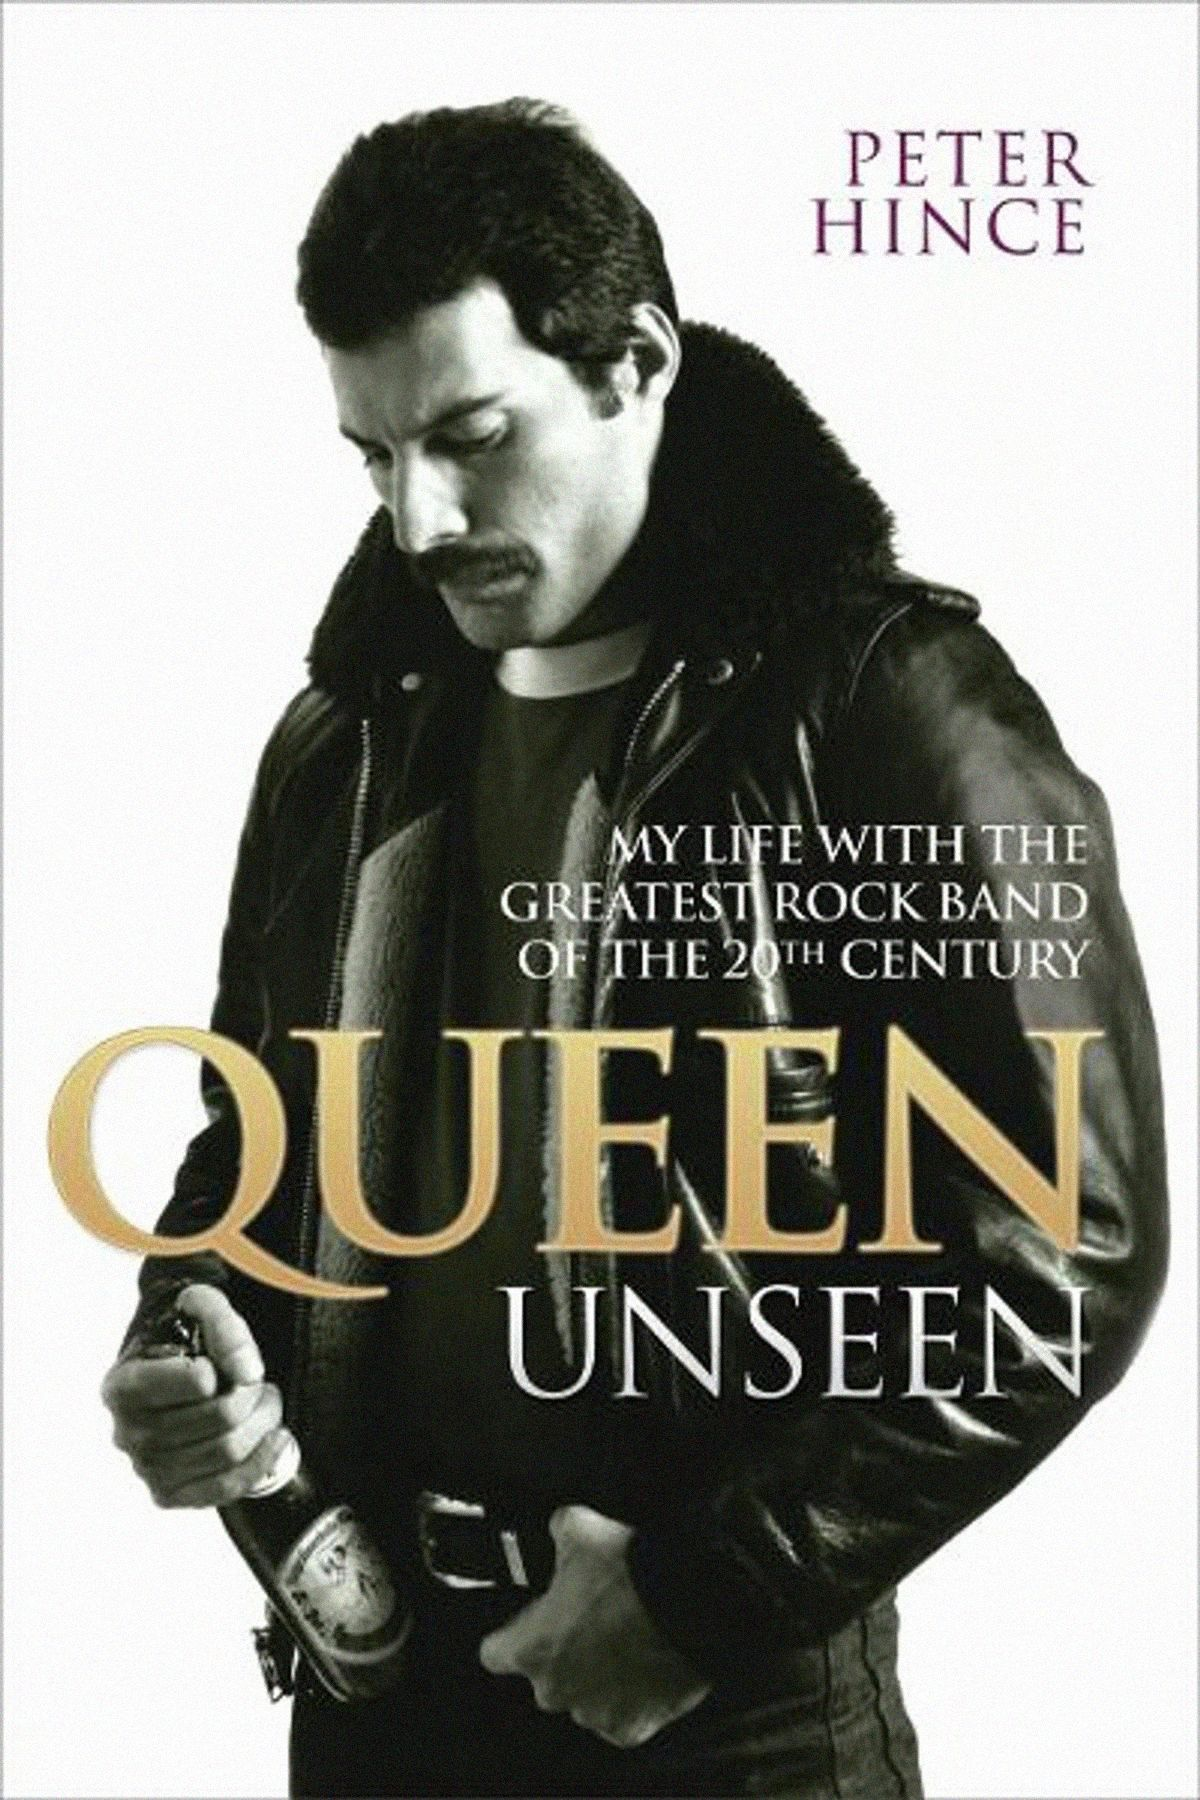 Queen Unseen My Life With The Greatest Rock Band Of The 20th Century (книга Питера Хинса)